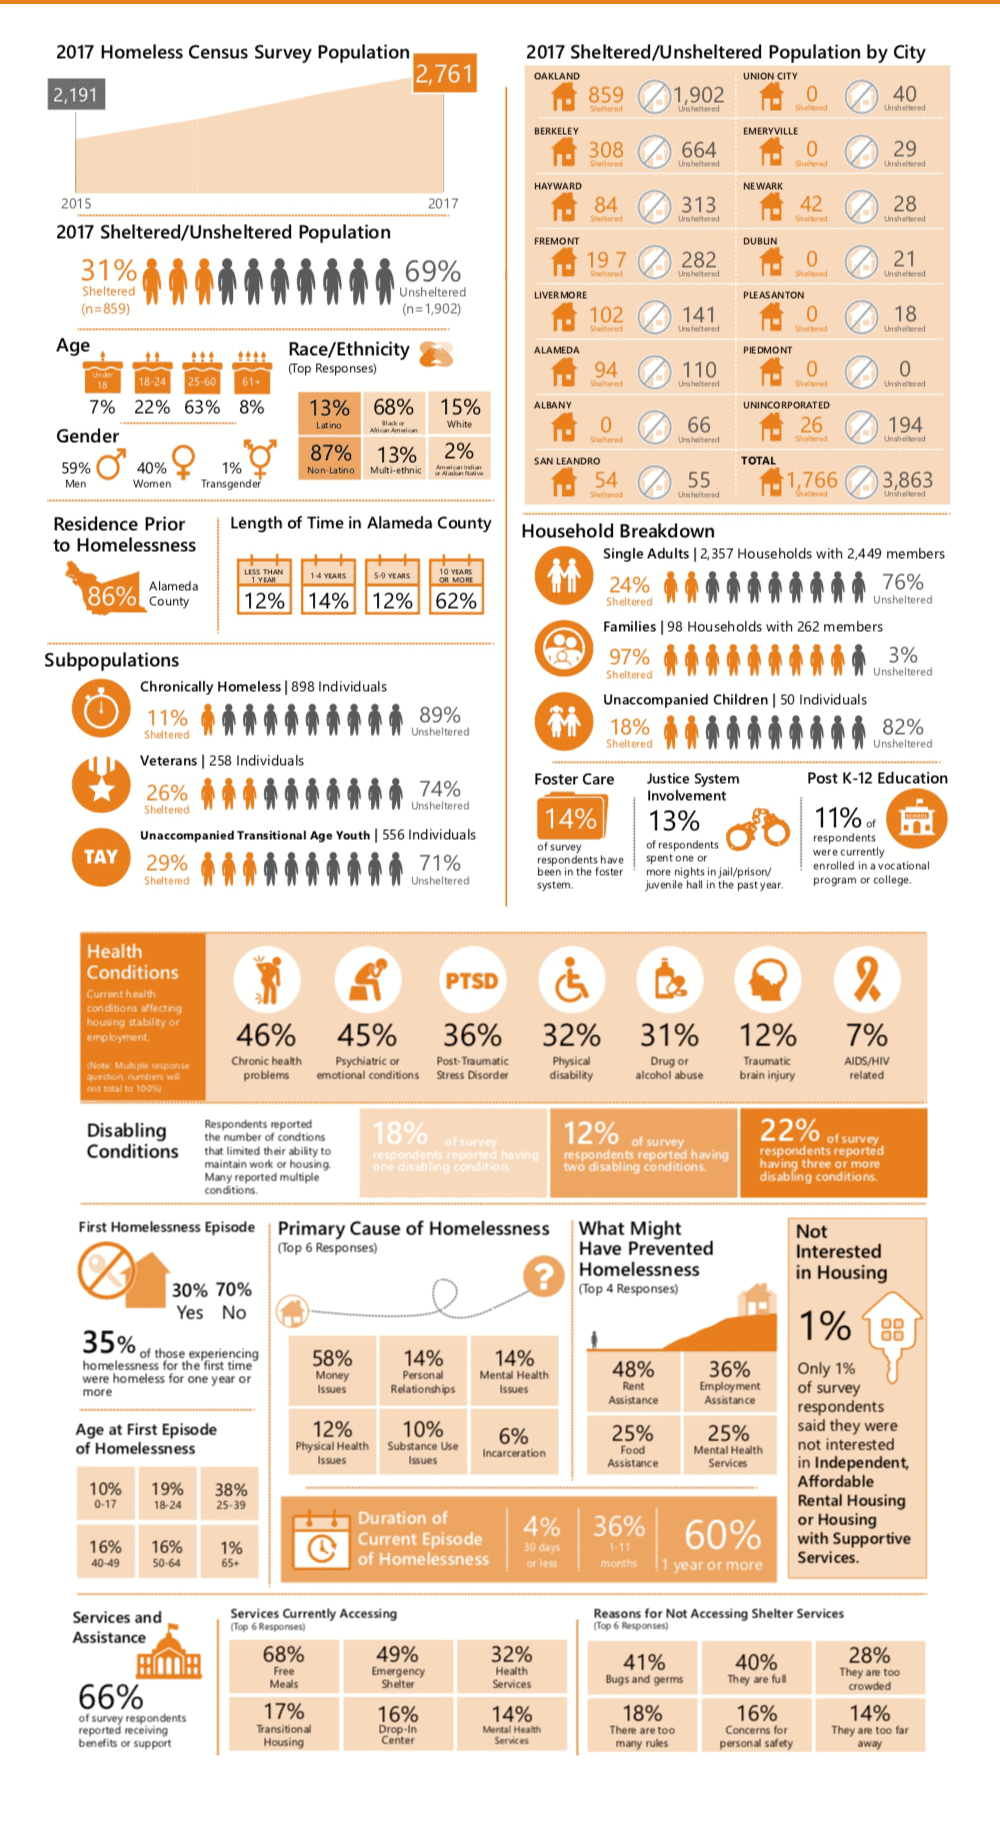 2017 Homeless Census Survey results infographic